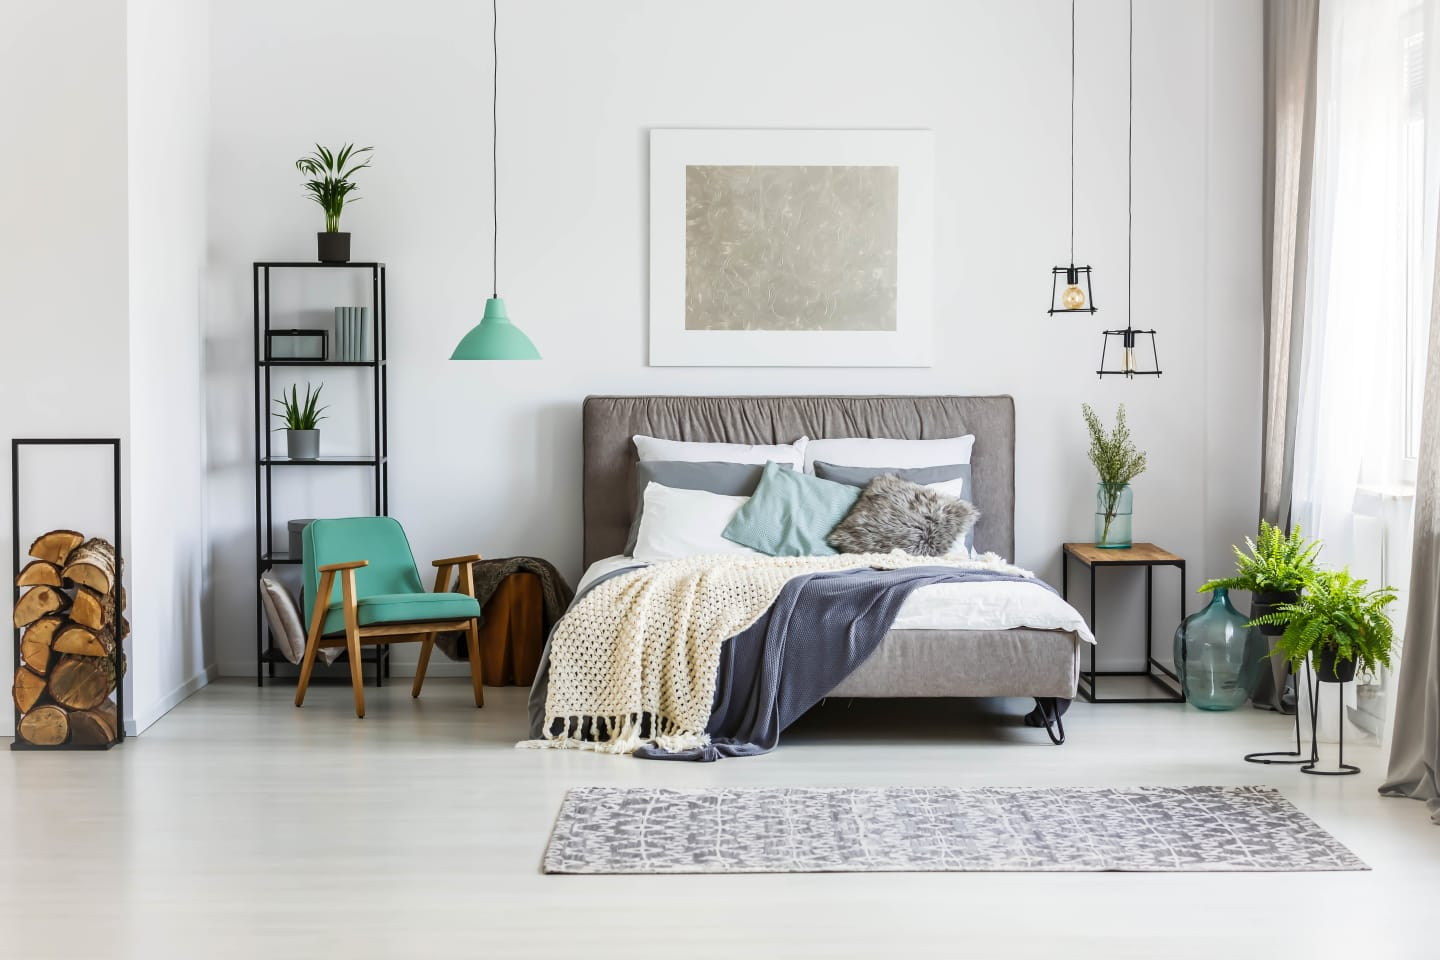 Monochrome schemed bedroom with a hint of mint